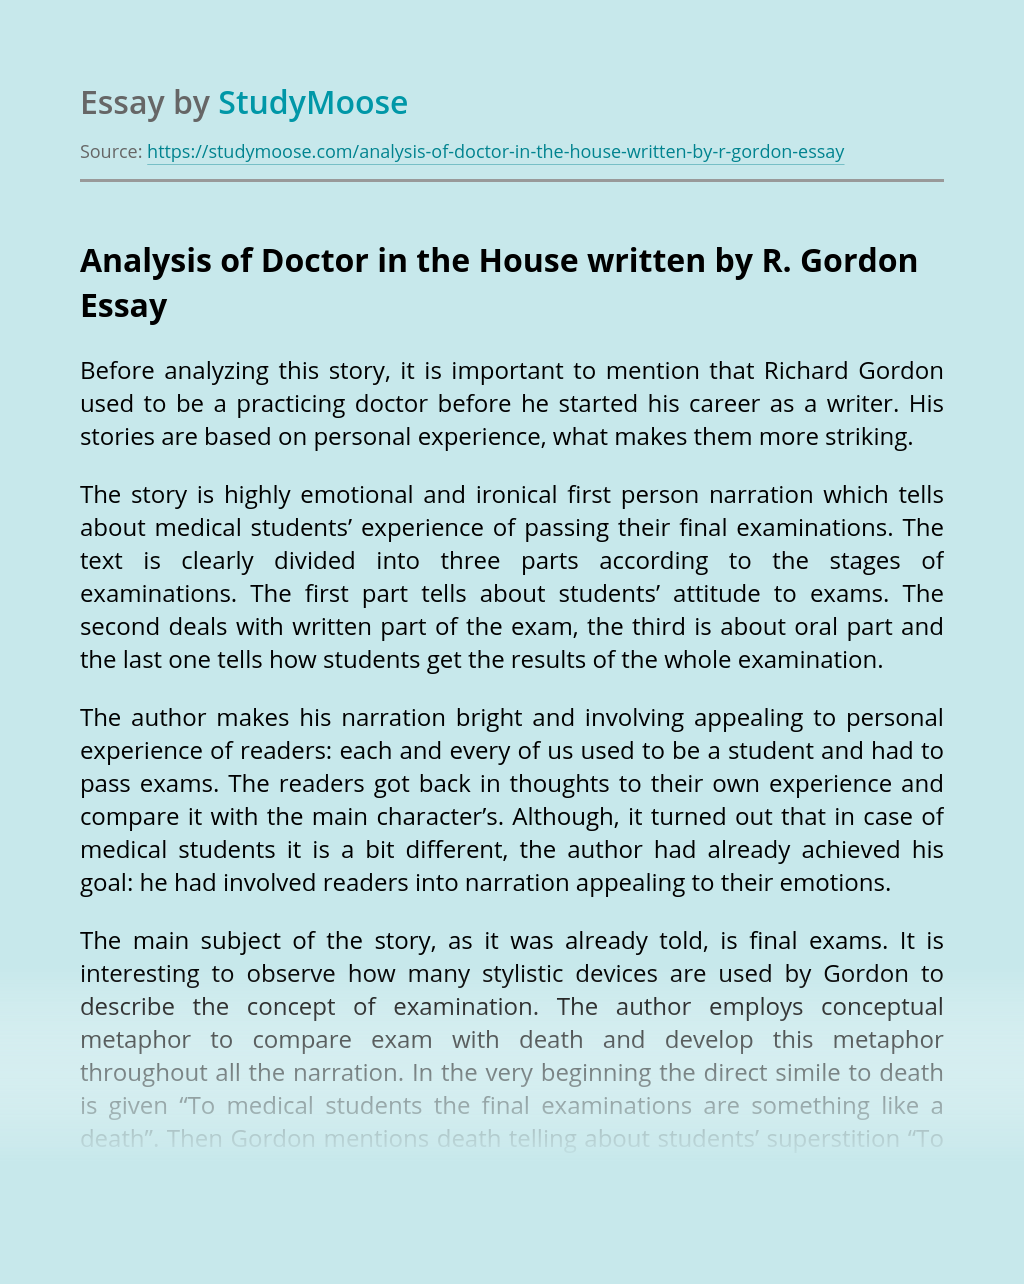 Analysis of Doctor in the House written by R. Gordon